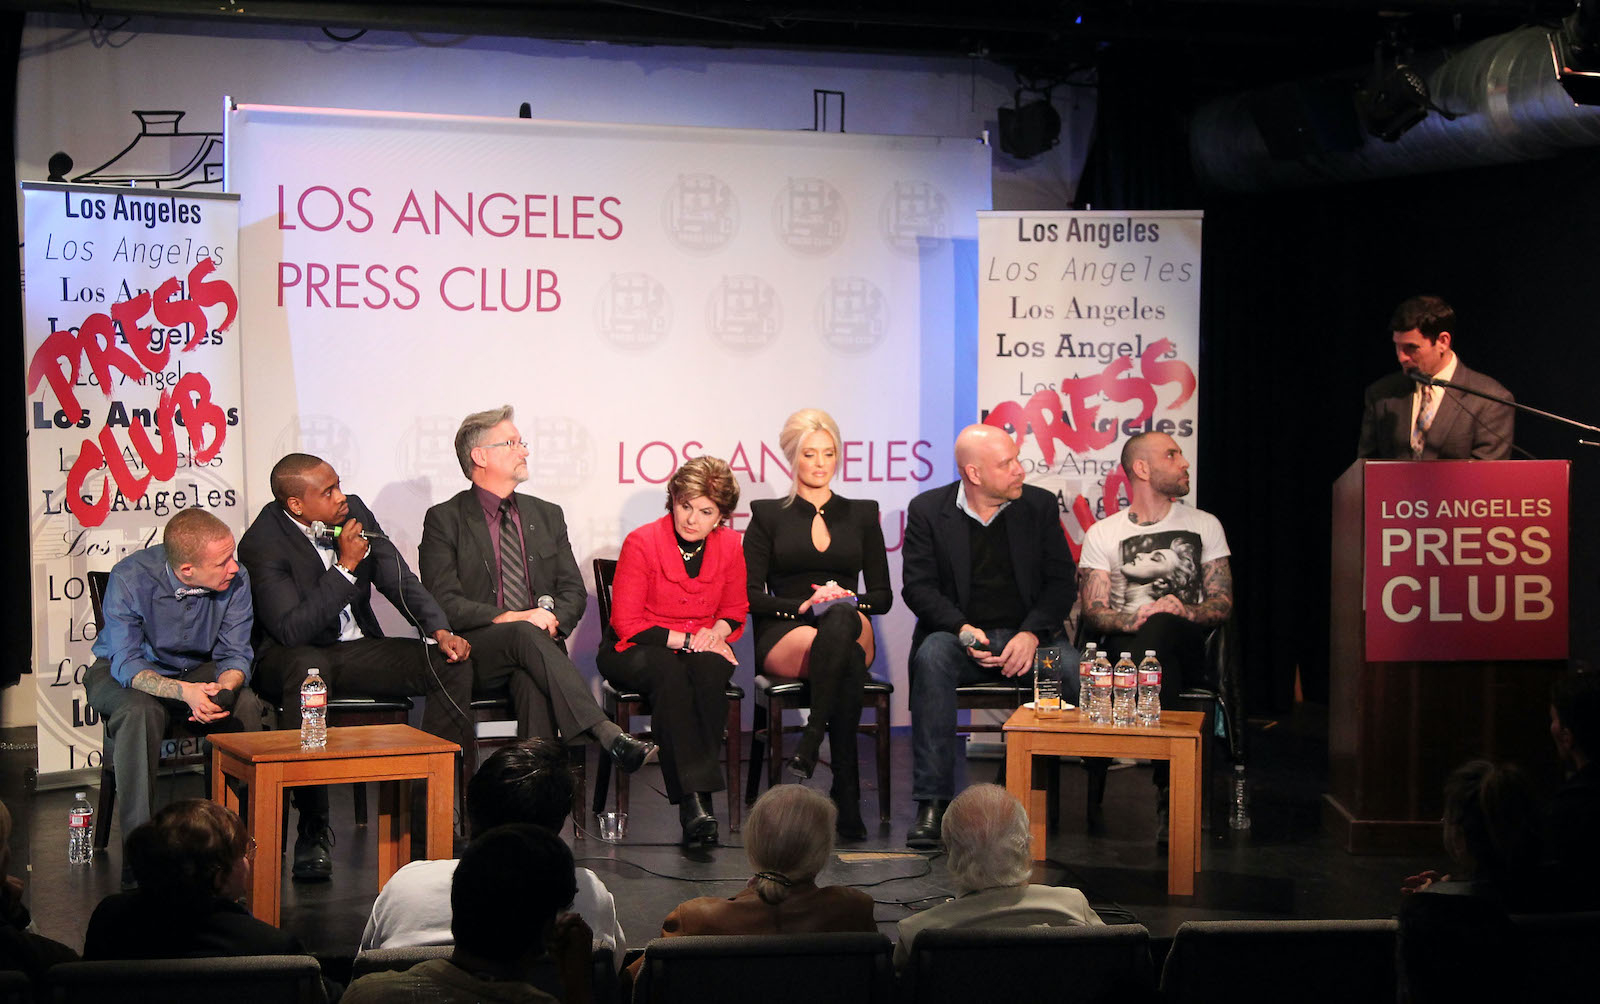 The Tom Girardi case shocked Gloria Allred. She's seen here with Erika Jayne honoring by LGBTs In The News at Los Angeles Press Club in 2015